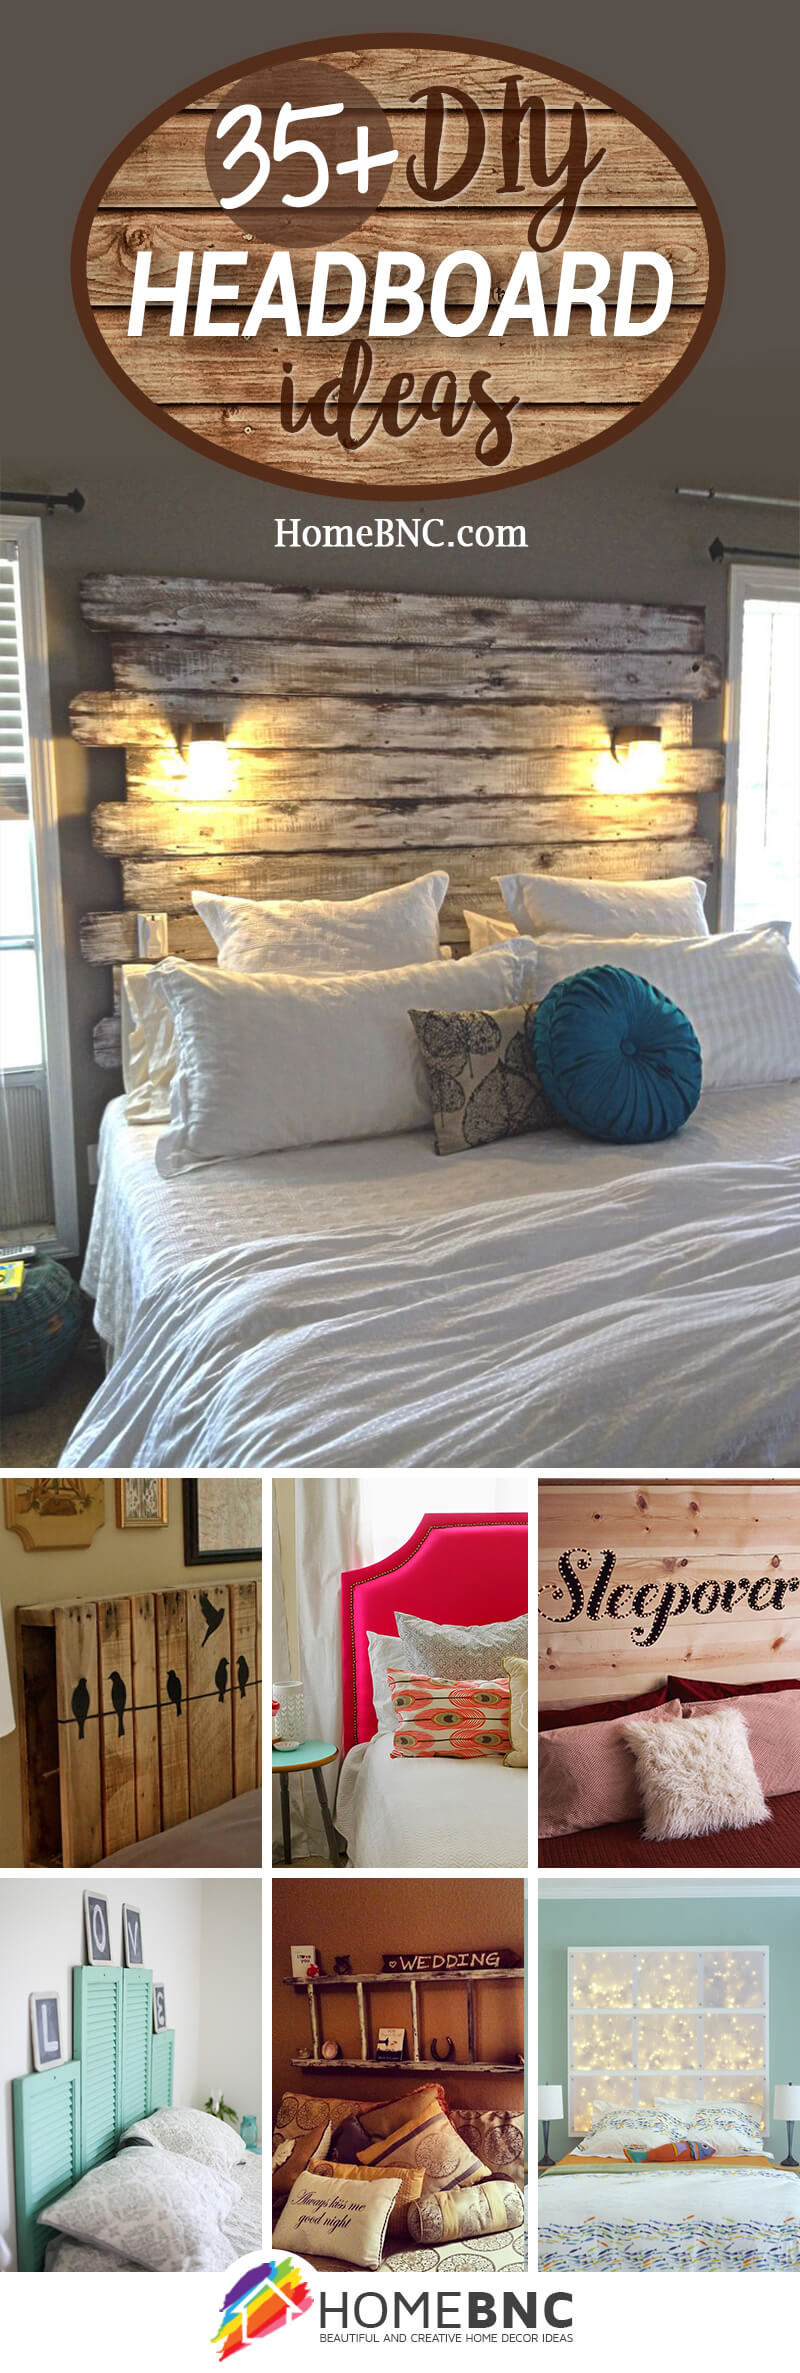 The 47 Best DIY Headboard Ideas for 2018 DIY Headboard Ideas